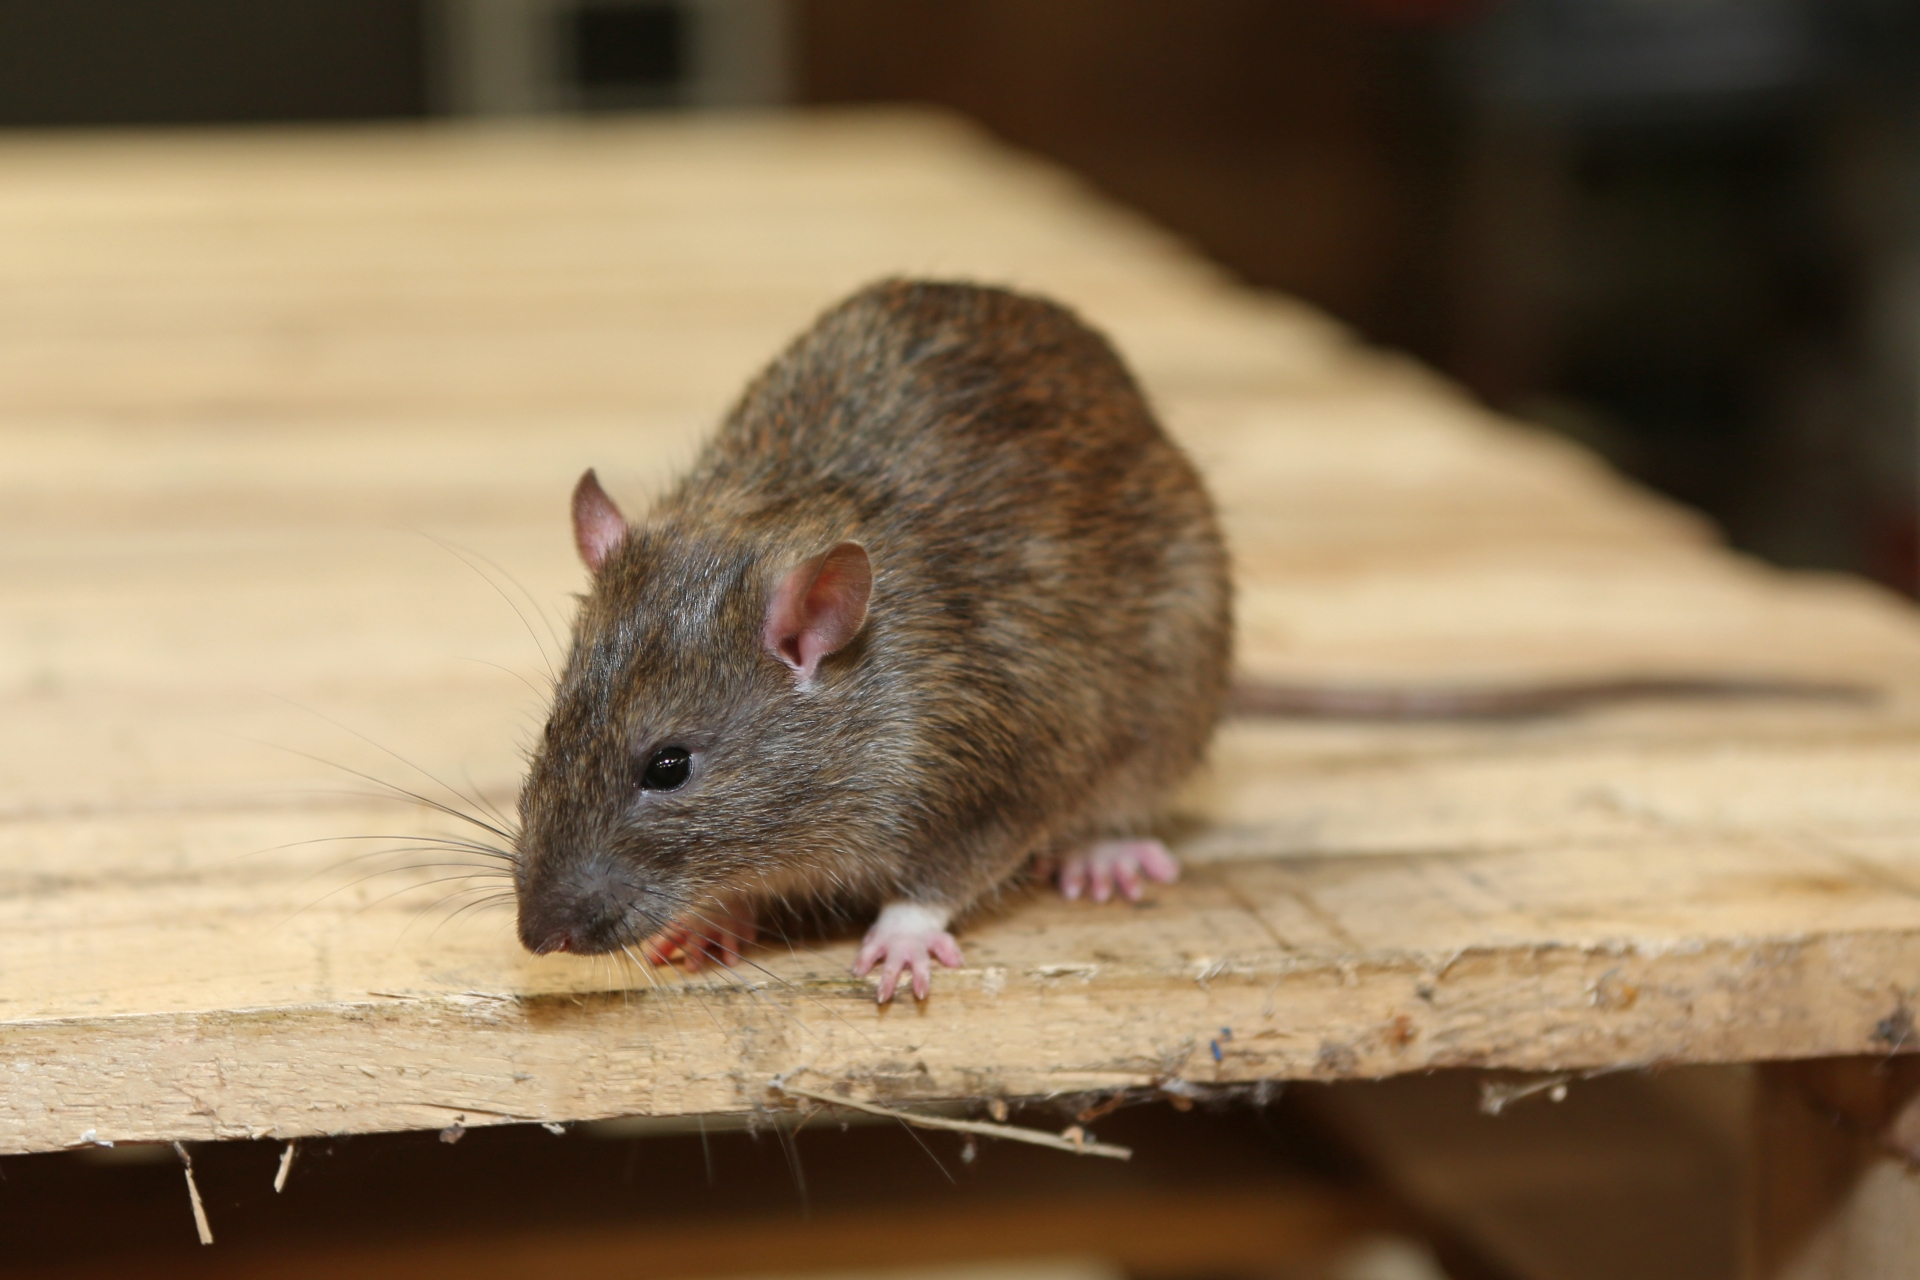 Rat extermination, Pest Control in North Cheam, Stonecot Hill, SM3. Call Now 020 8166 9746